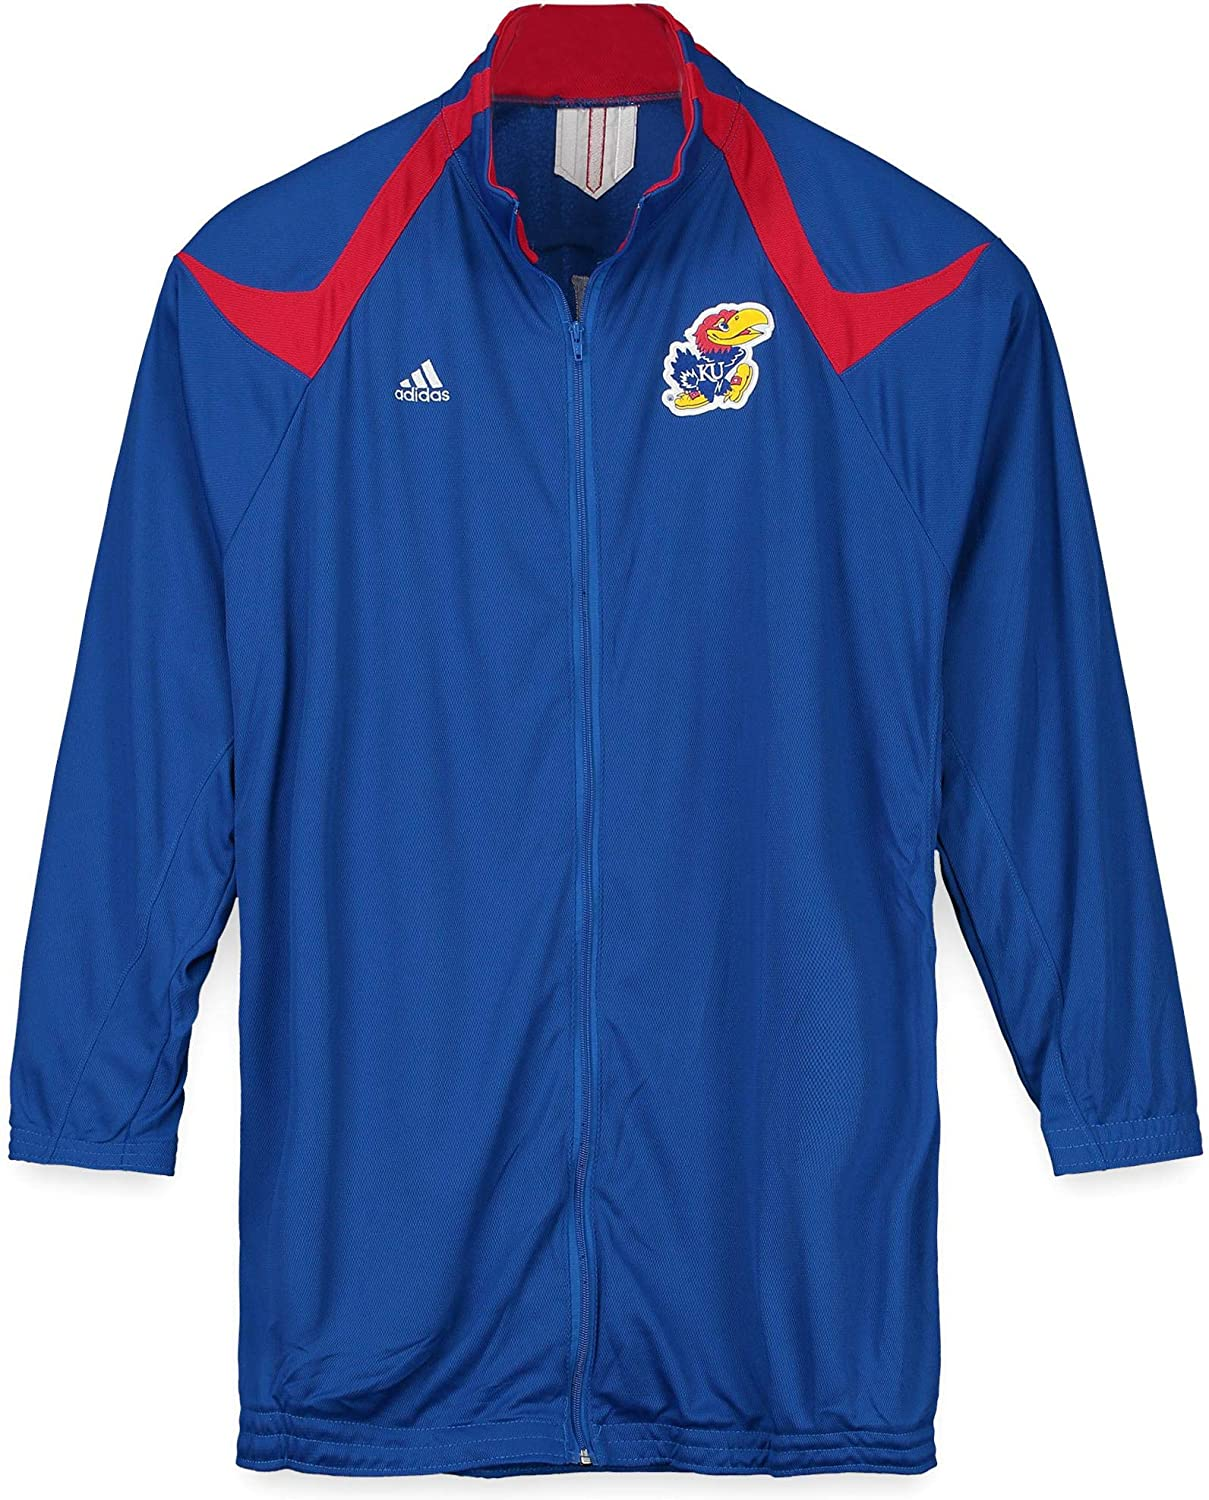 Kansas Jayhawks Team-Issued Blue and Red Short Sleeve Pullover from the Basketball Program - Fanatics Authentic Certified